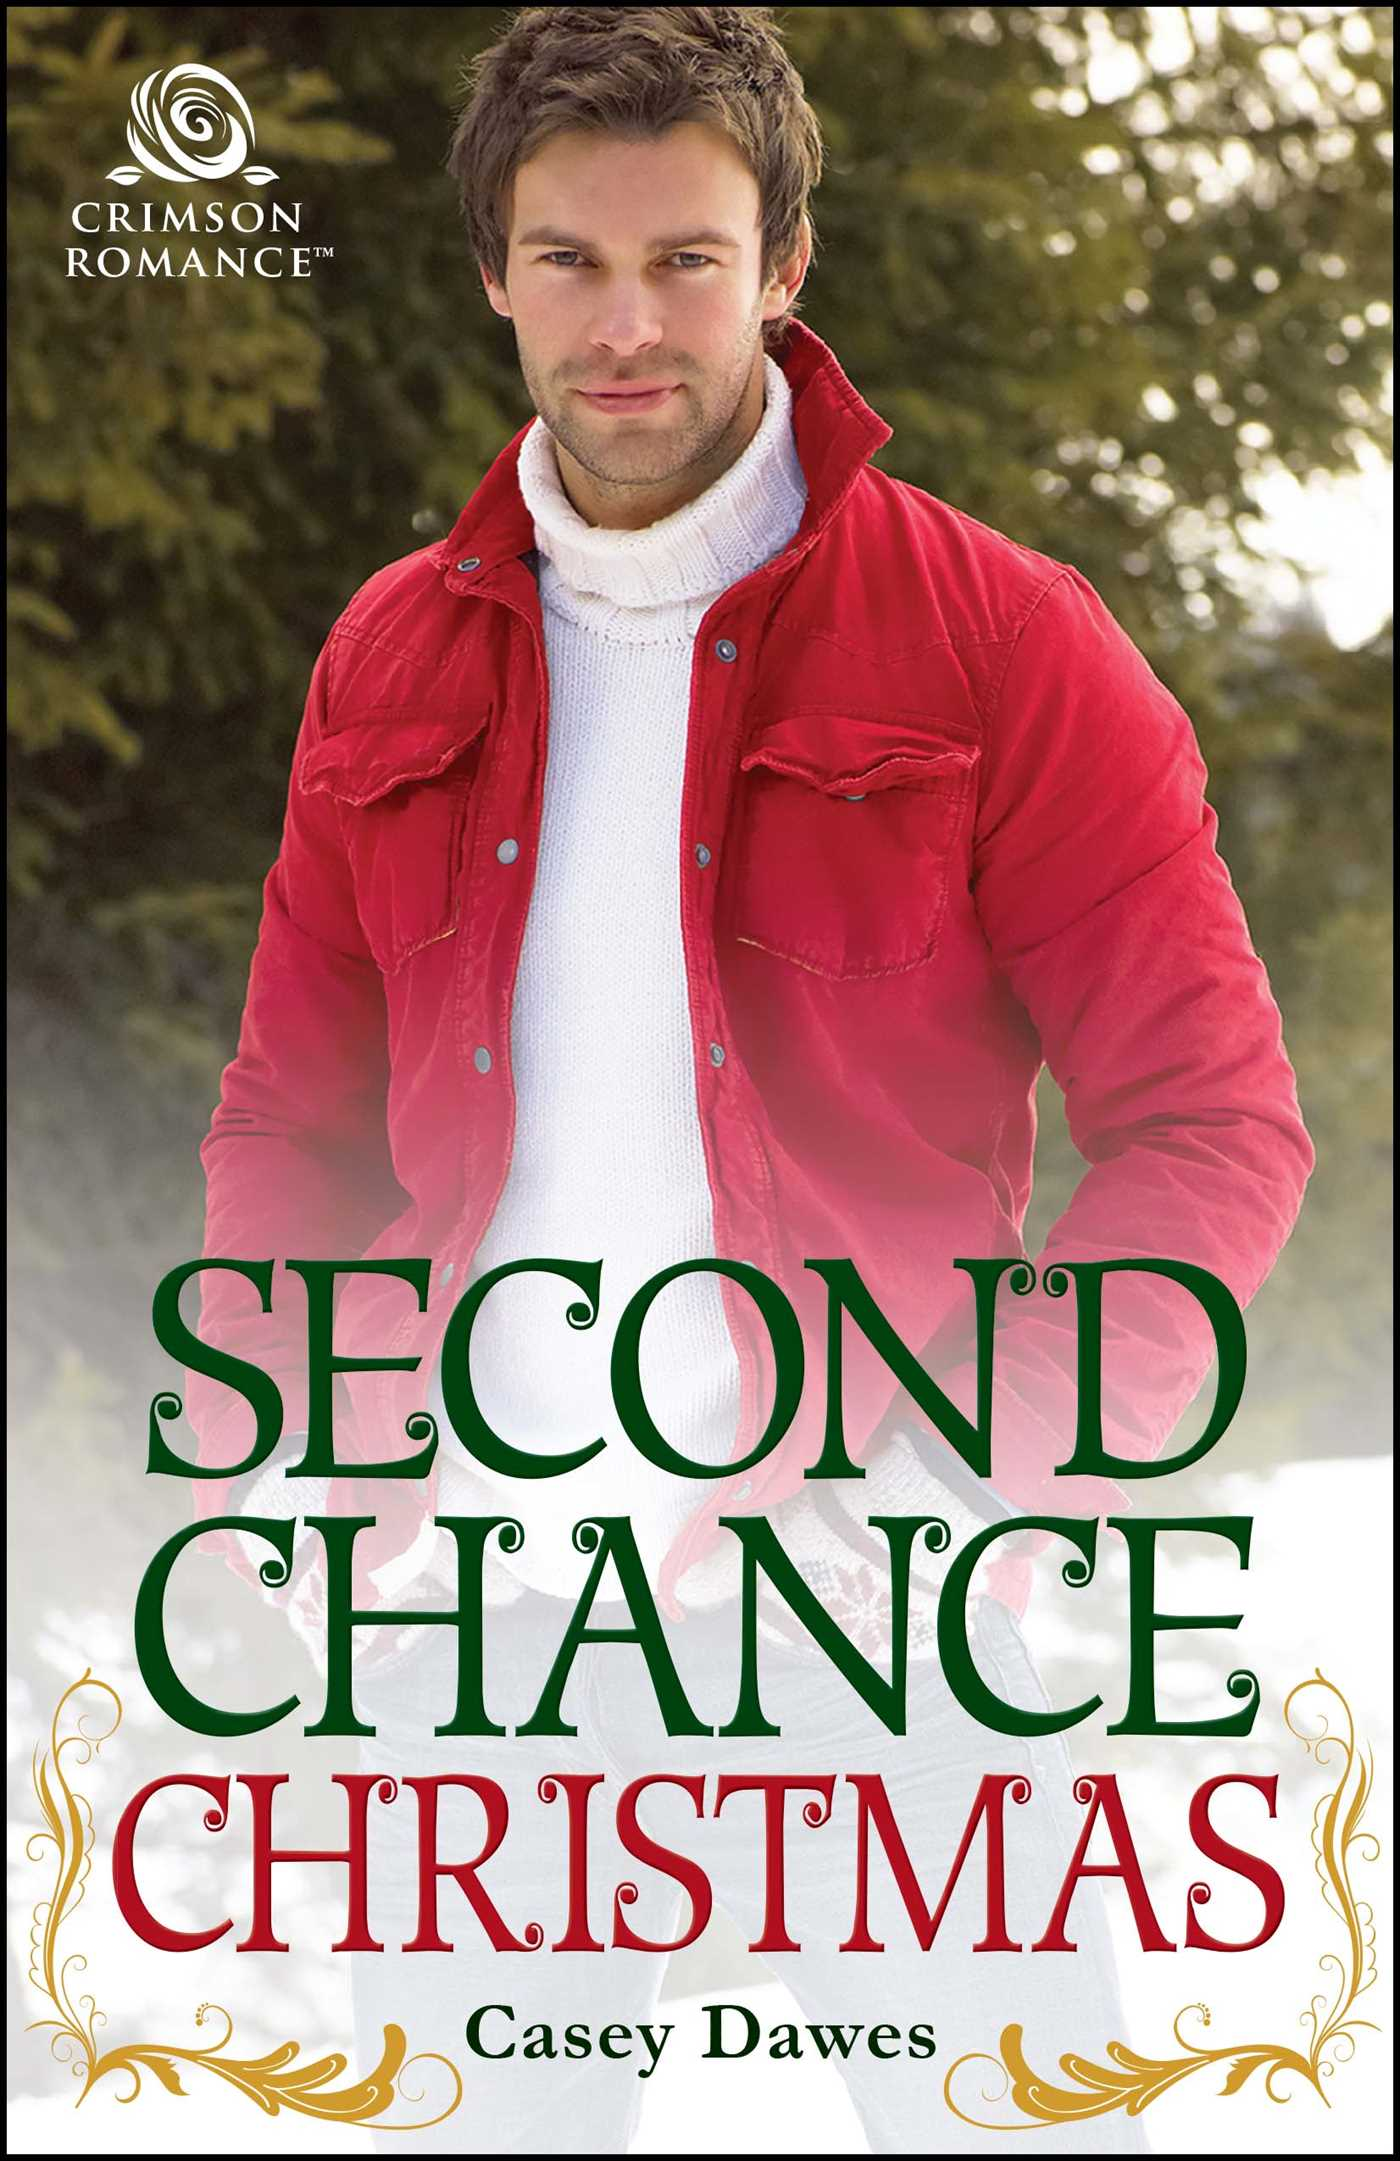 Second chance christmas 9781507207079 hr